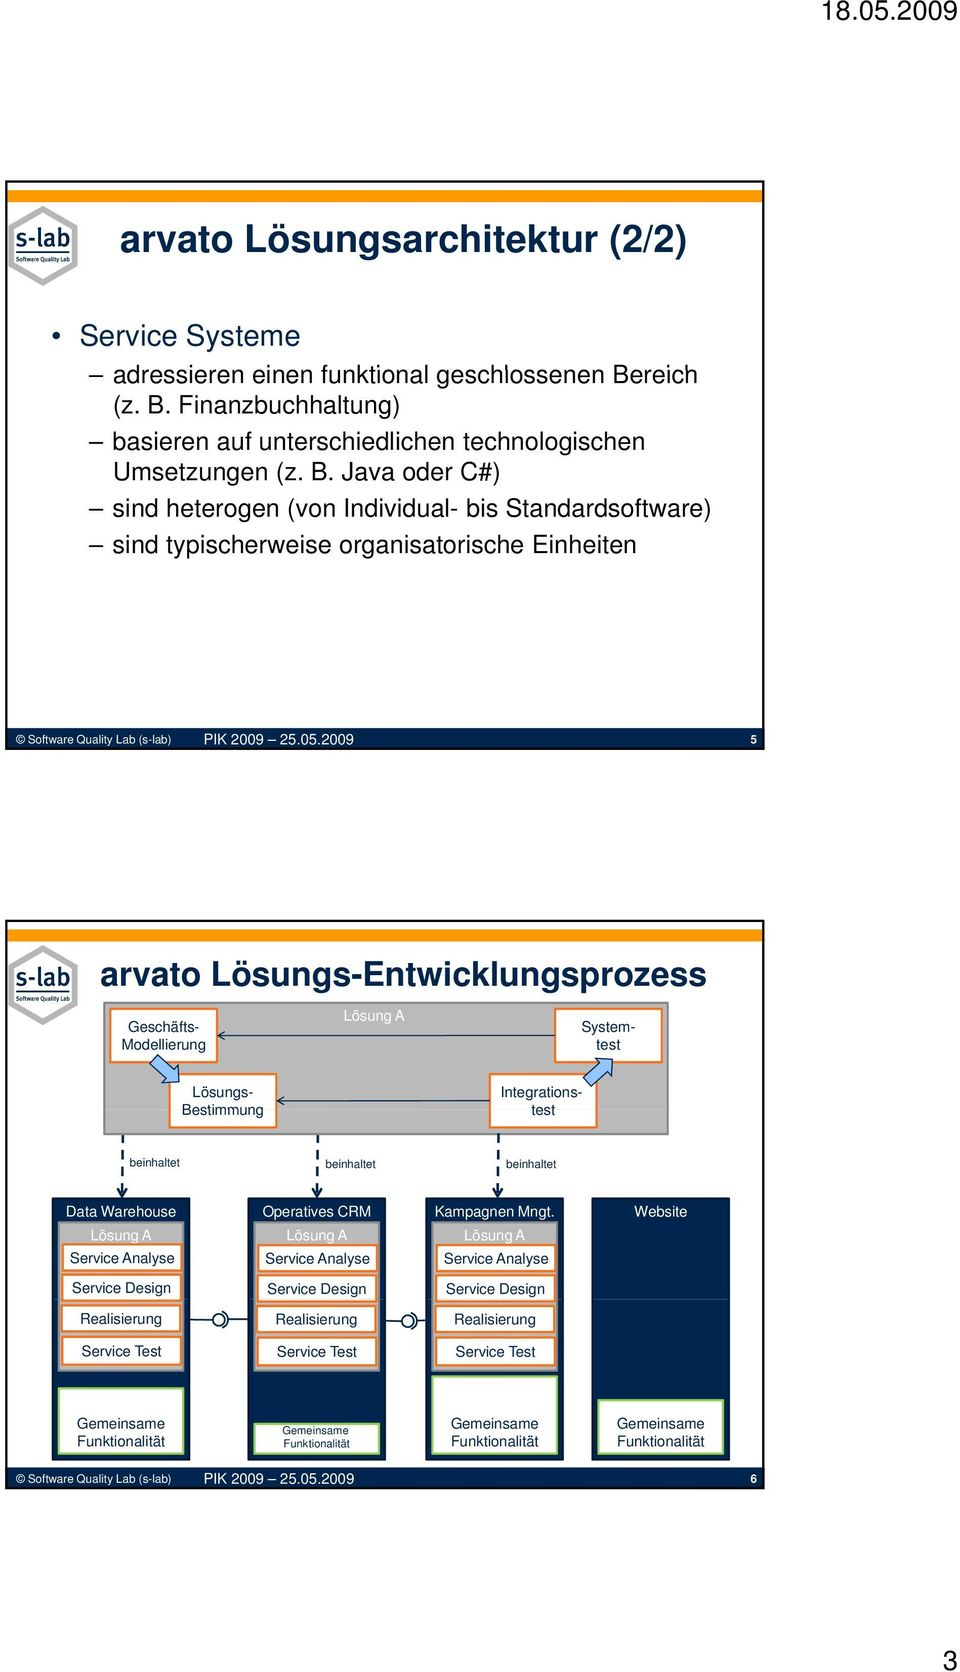 Modellierung Integrations- test Systemtest Lösungs- Bestimmung beinhaltet beinhaltet beinhaltet Data Warehouse Analyse Data Warehouse Design Realisierung Analyse Campaign